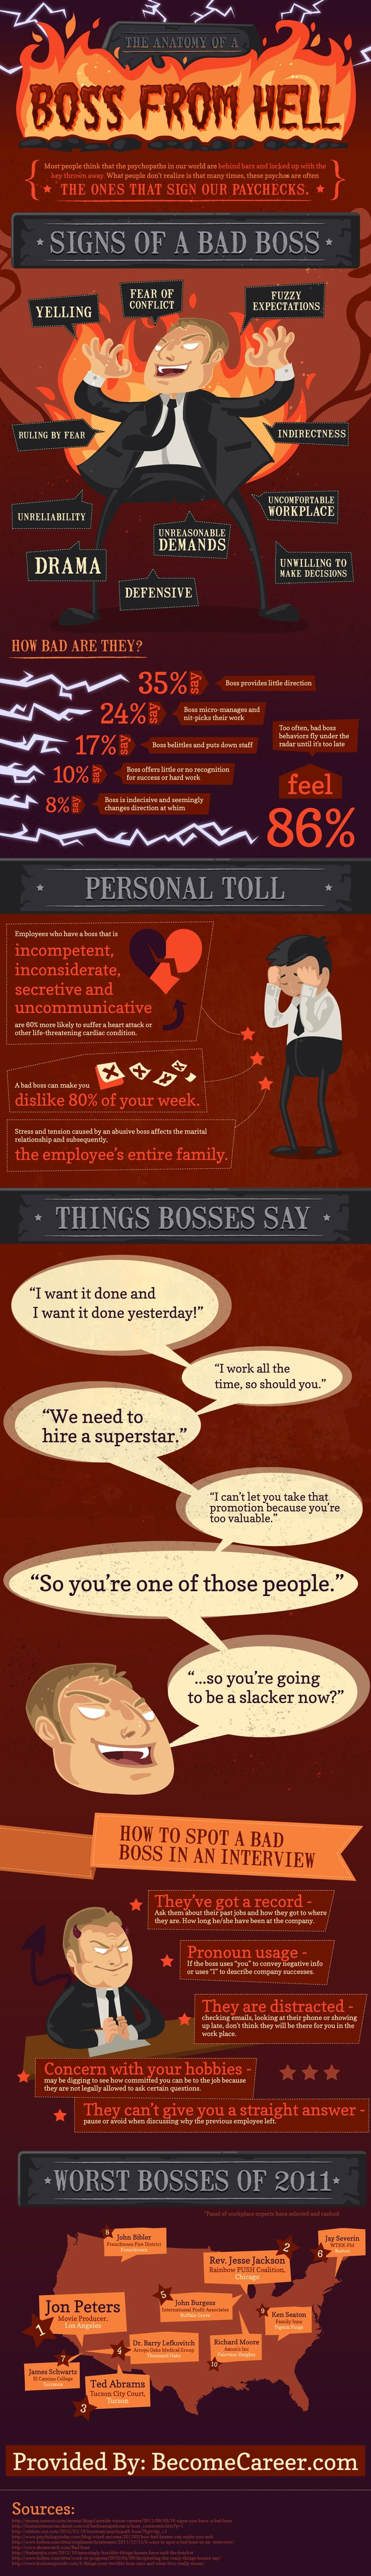 The Anatomy of a BOSS FROM HELL -  Sign of a Bad Boss #infographic